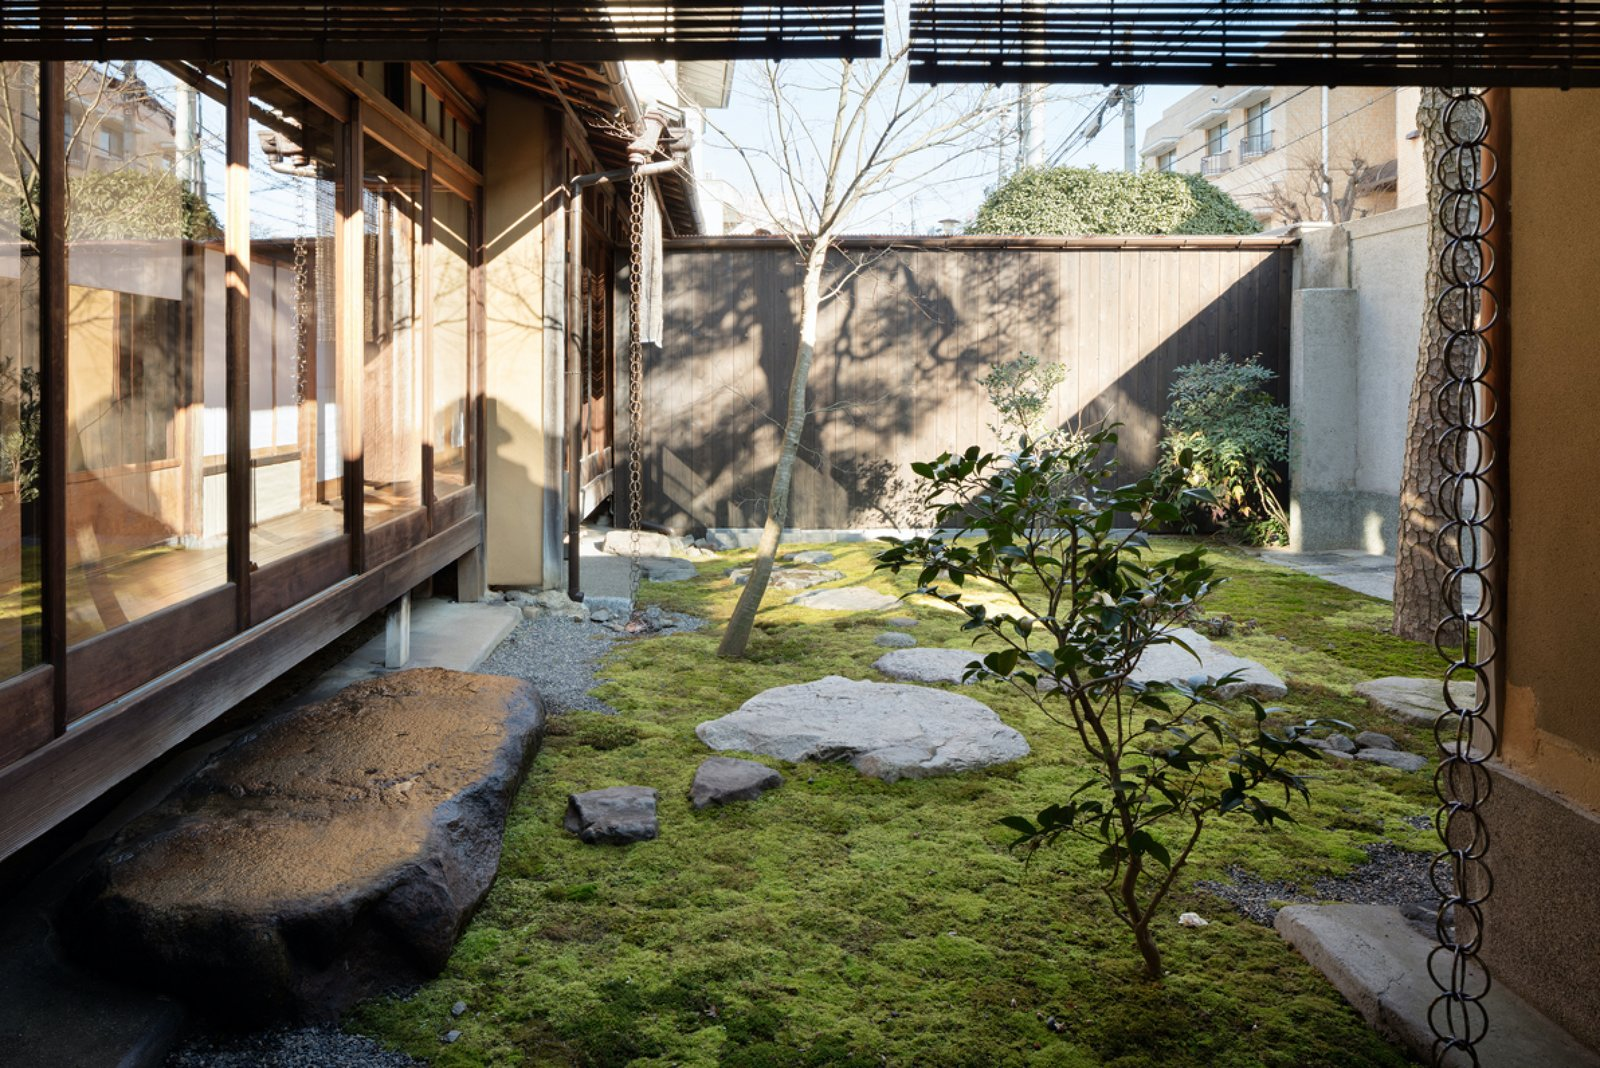 Outdoor, Garden, Trees, Gardens, Grass, Boulders, Wood Fences, Wall, Vertical Fences, Wall, and Concrete Fences, Wall A lounge space looks onto a calming moss garden and provides the perfect zen setting to relax with a cup of tea.  Photo 3 of 13 in A Minimalist Townhouse Provides Serene Accommodations in Historic Kyoto